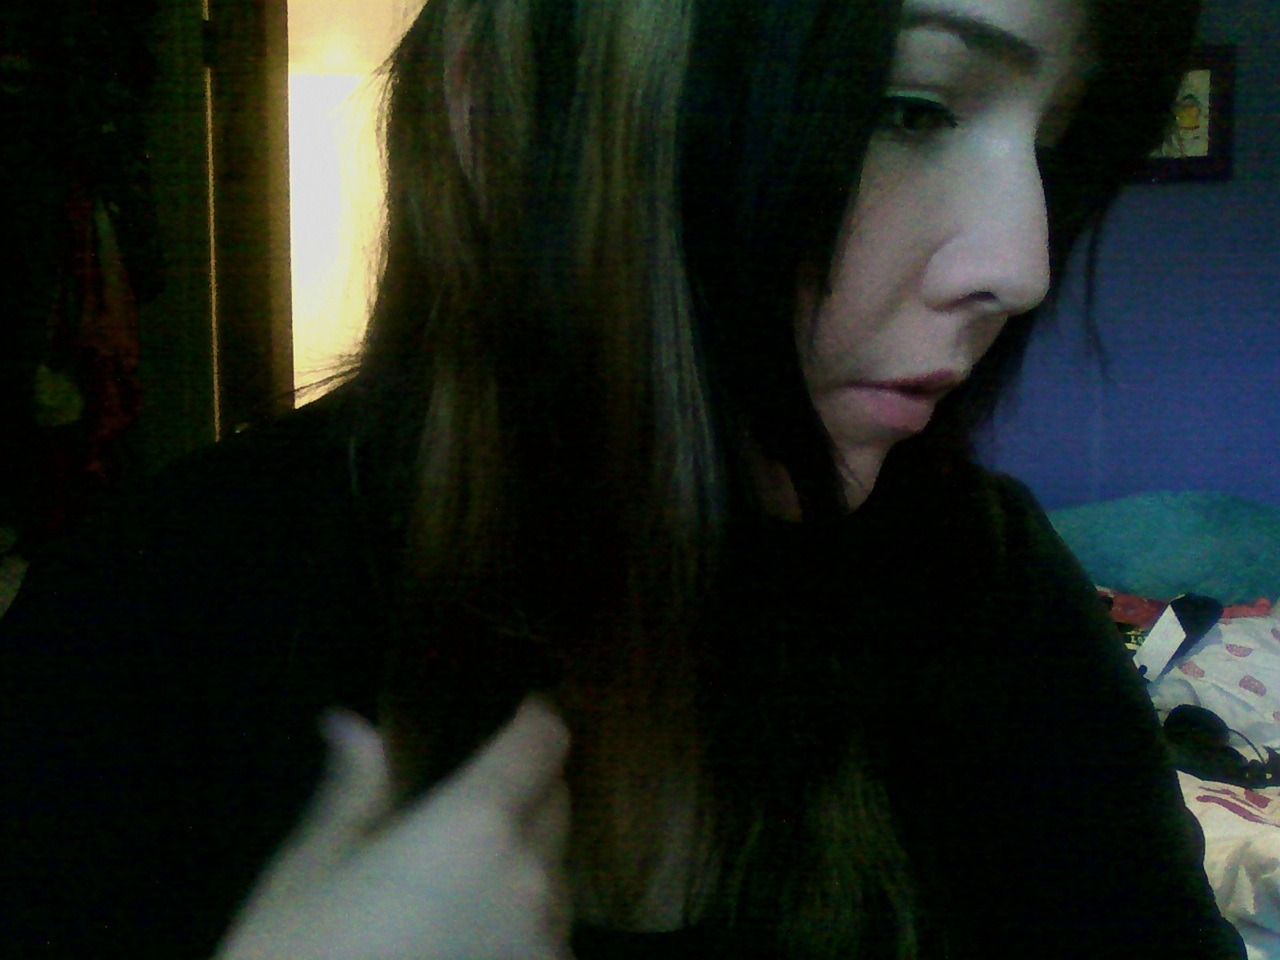 I want moar blonde :( /cry It's raining a lot again today, constantly.